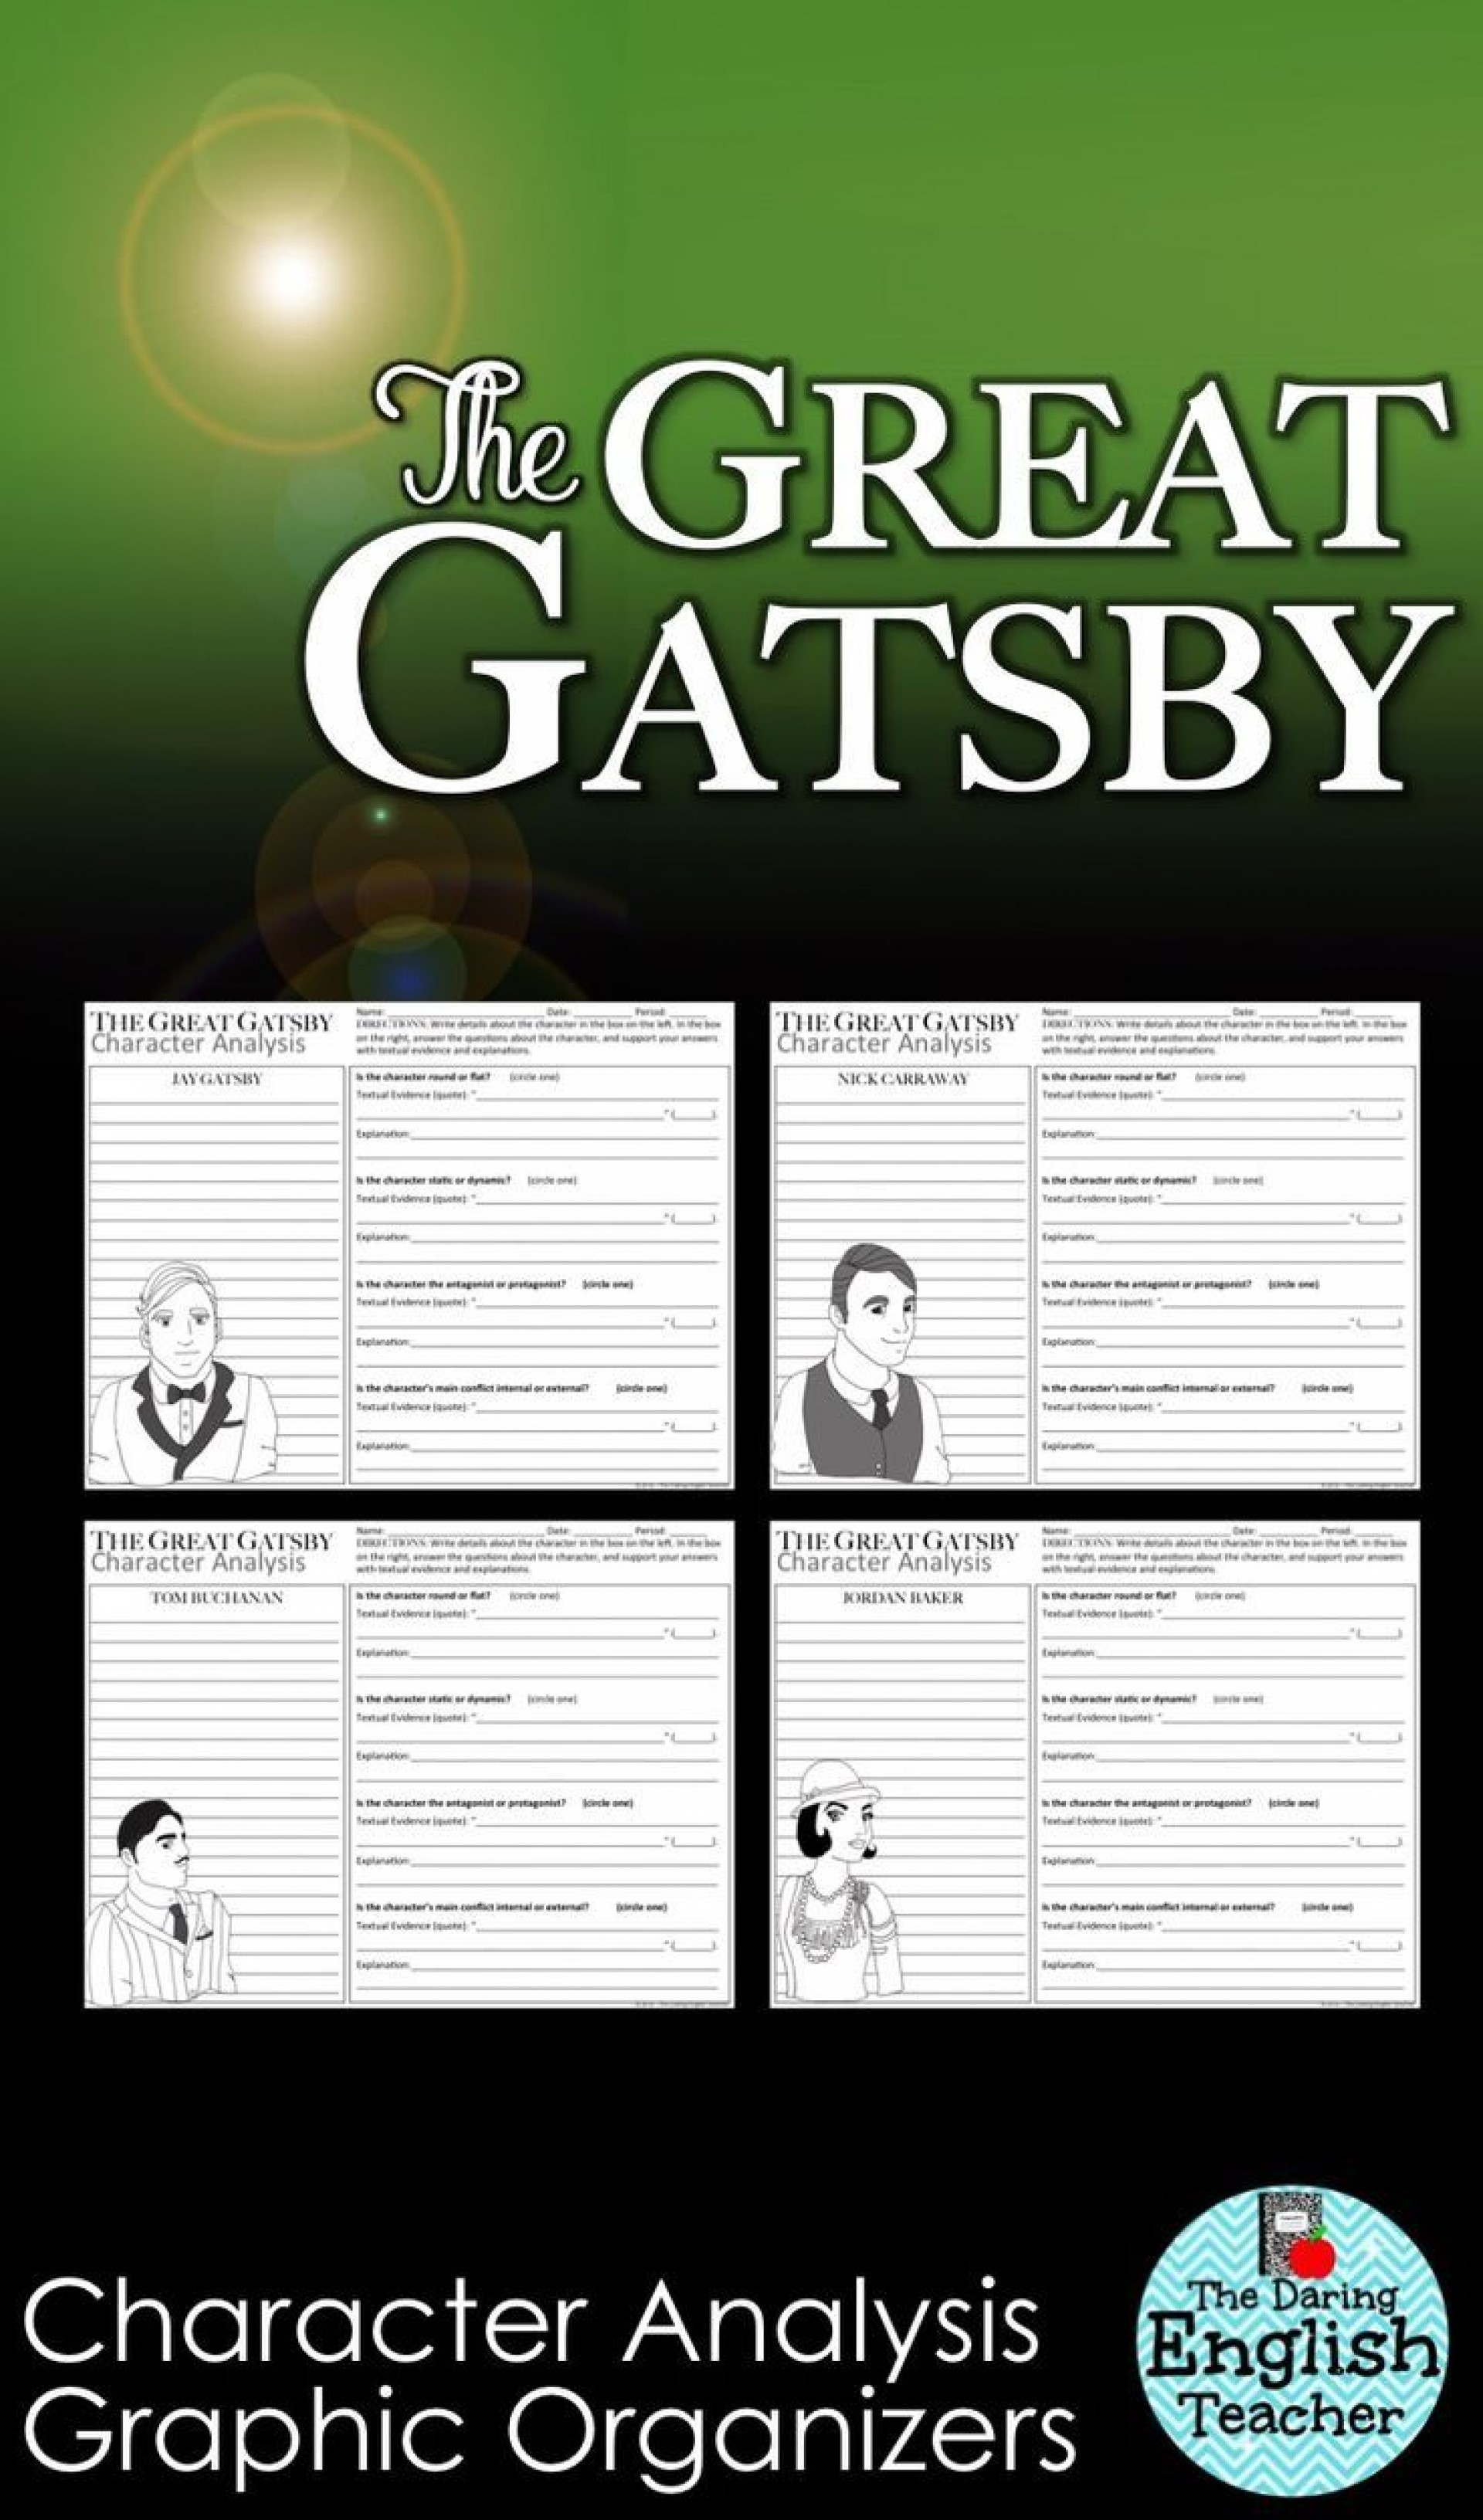 019 The Great Gatsby Essay Topics Example Exceptional Prompts American Dream Questions And Answers Research 1920